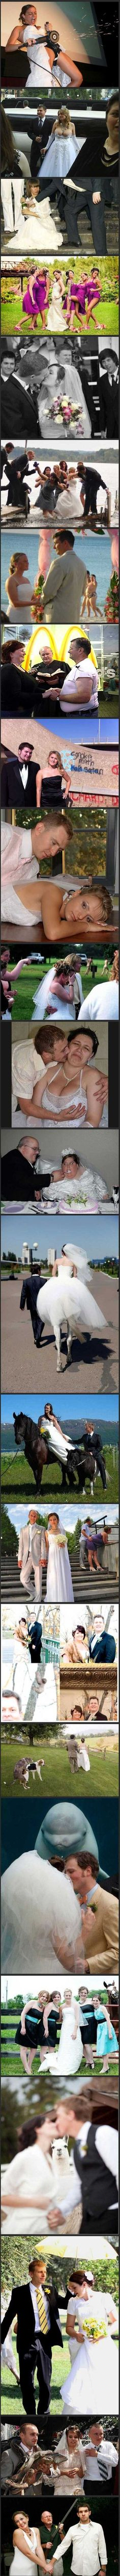 Mostly unfortunate wedding photos.. So so bad and yet so funny! CAN'T STOP LAUGHING